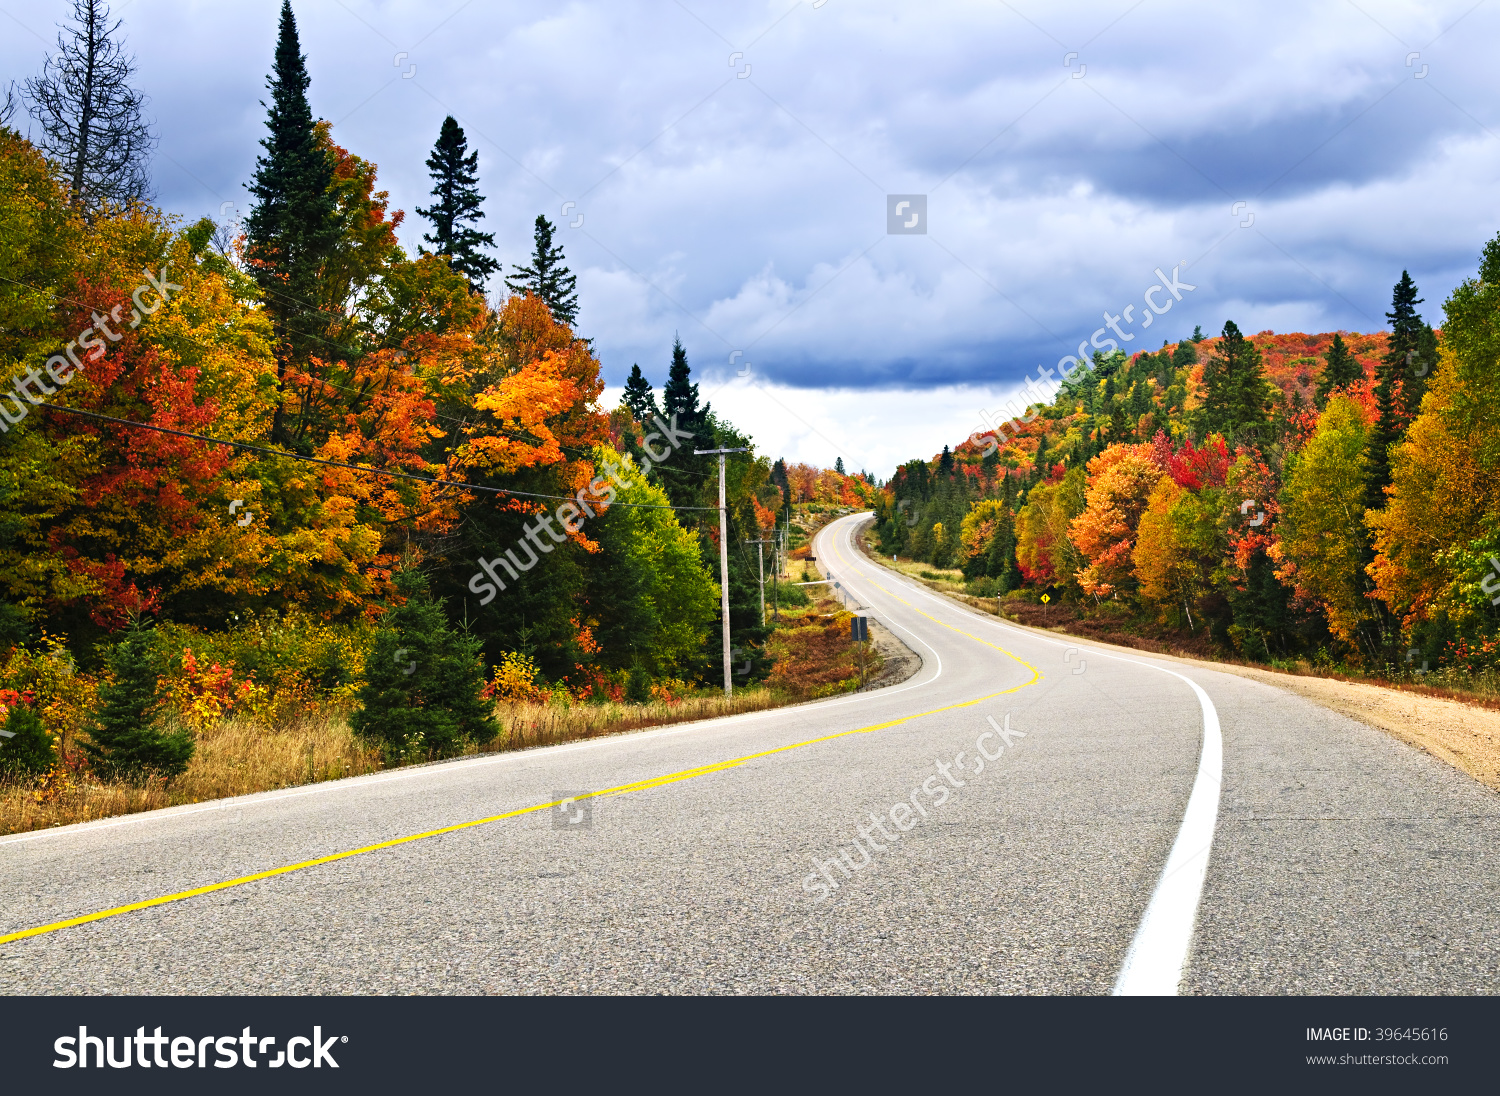 Fall Scenic Highway In Northern Ontario, Canada Stock Photo.